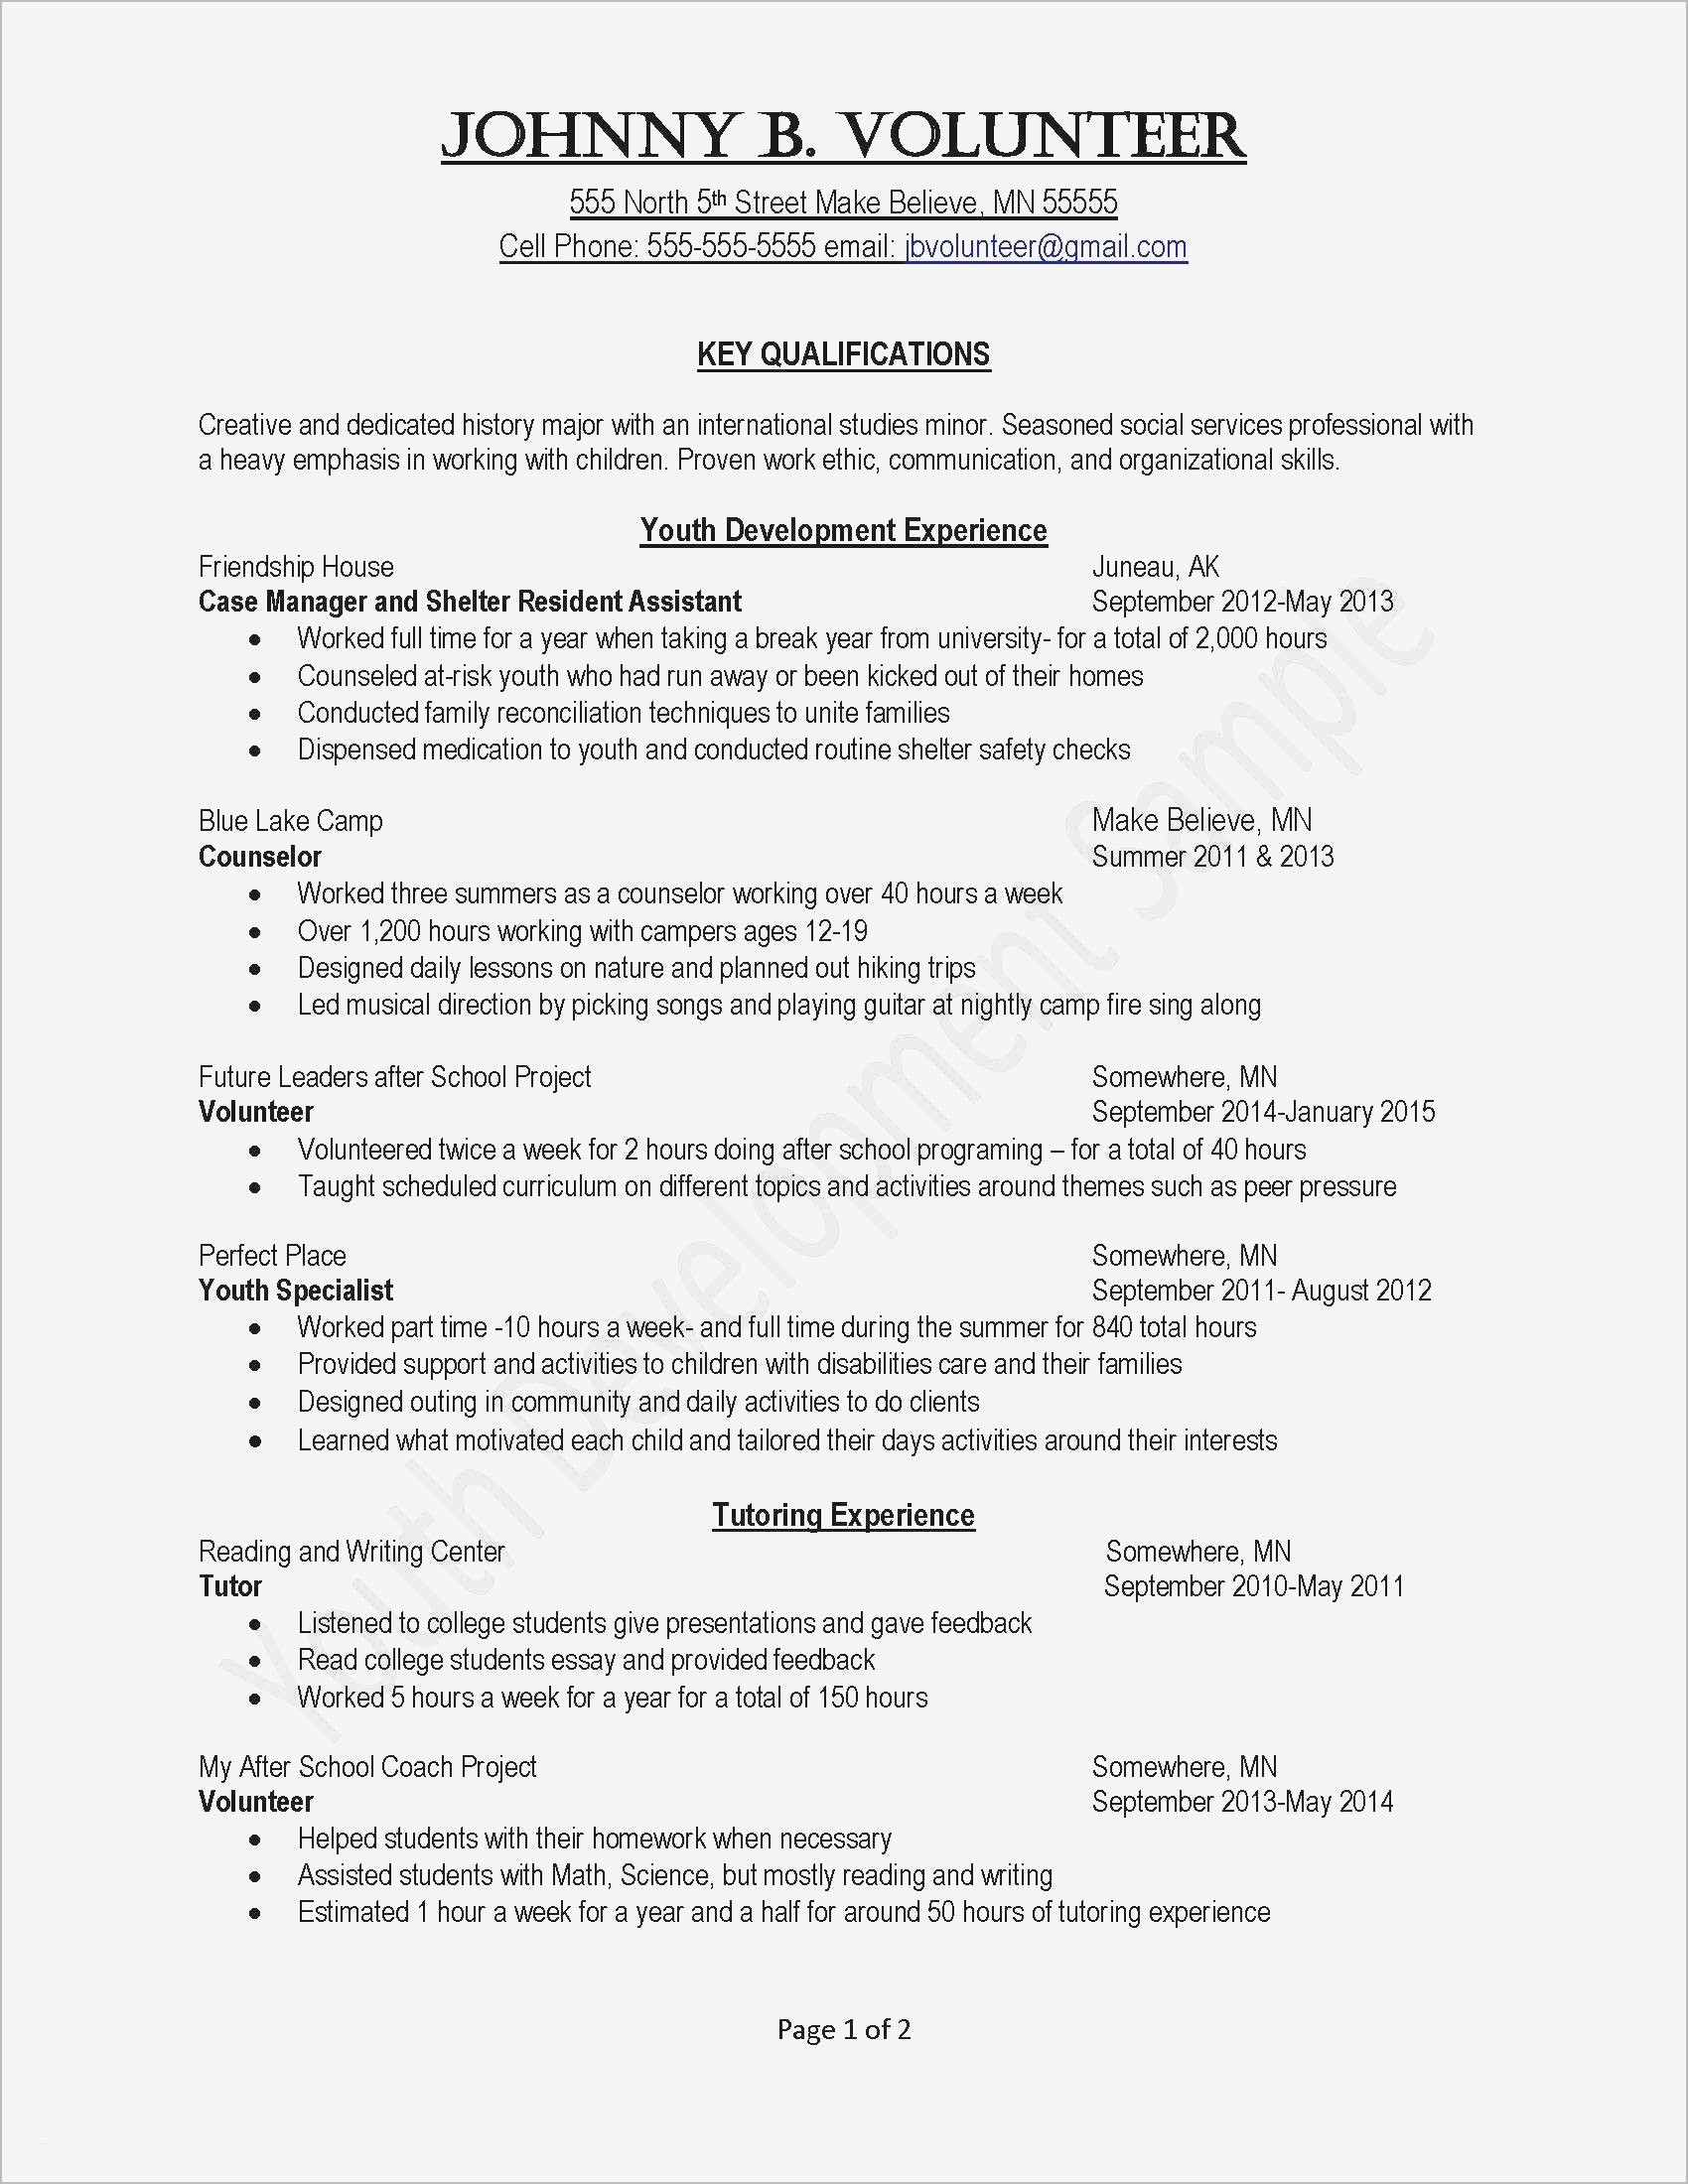 Cover Letter Template for Teenager - Teenage Resume Template Elegant Job Fer Letter Template Us Copy Od